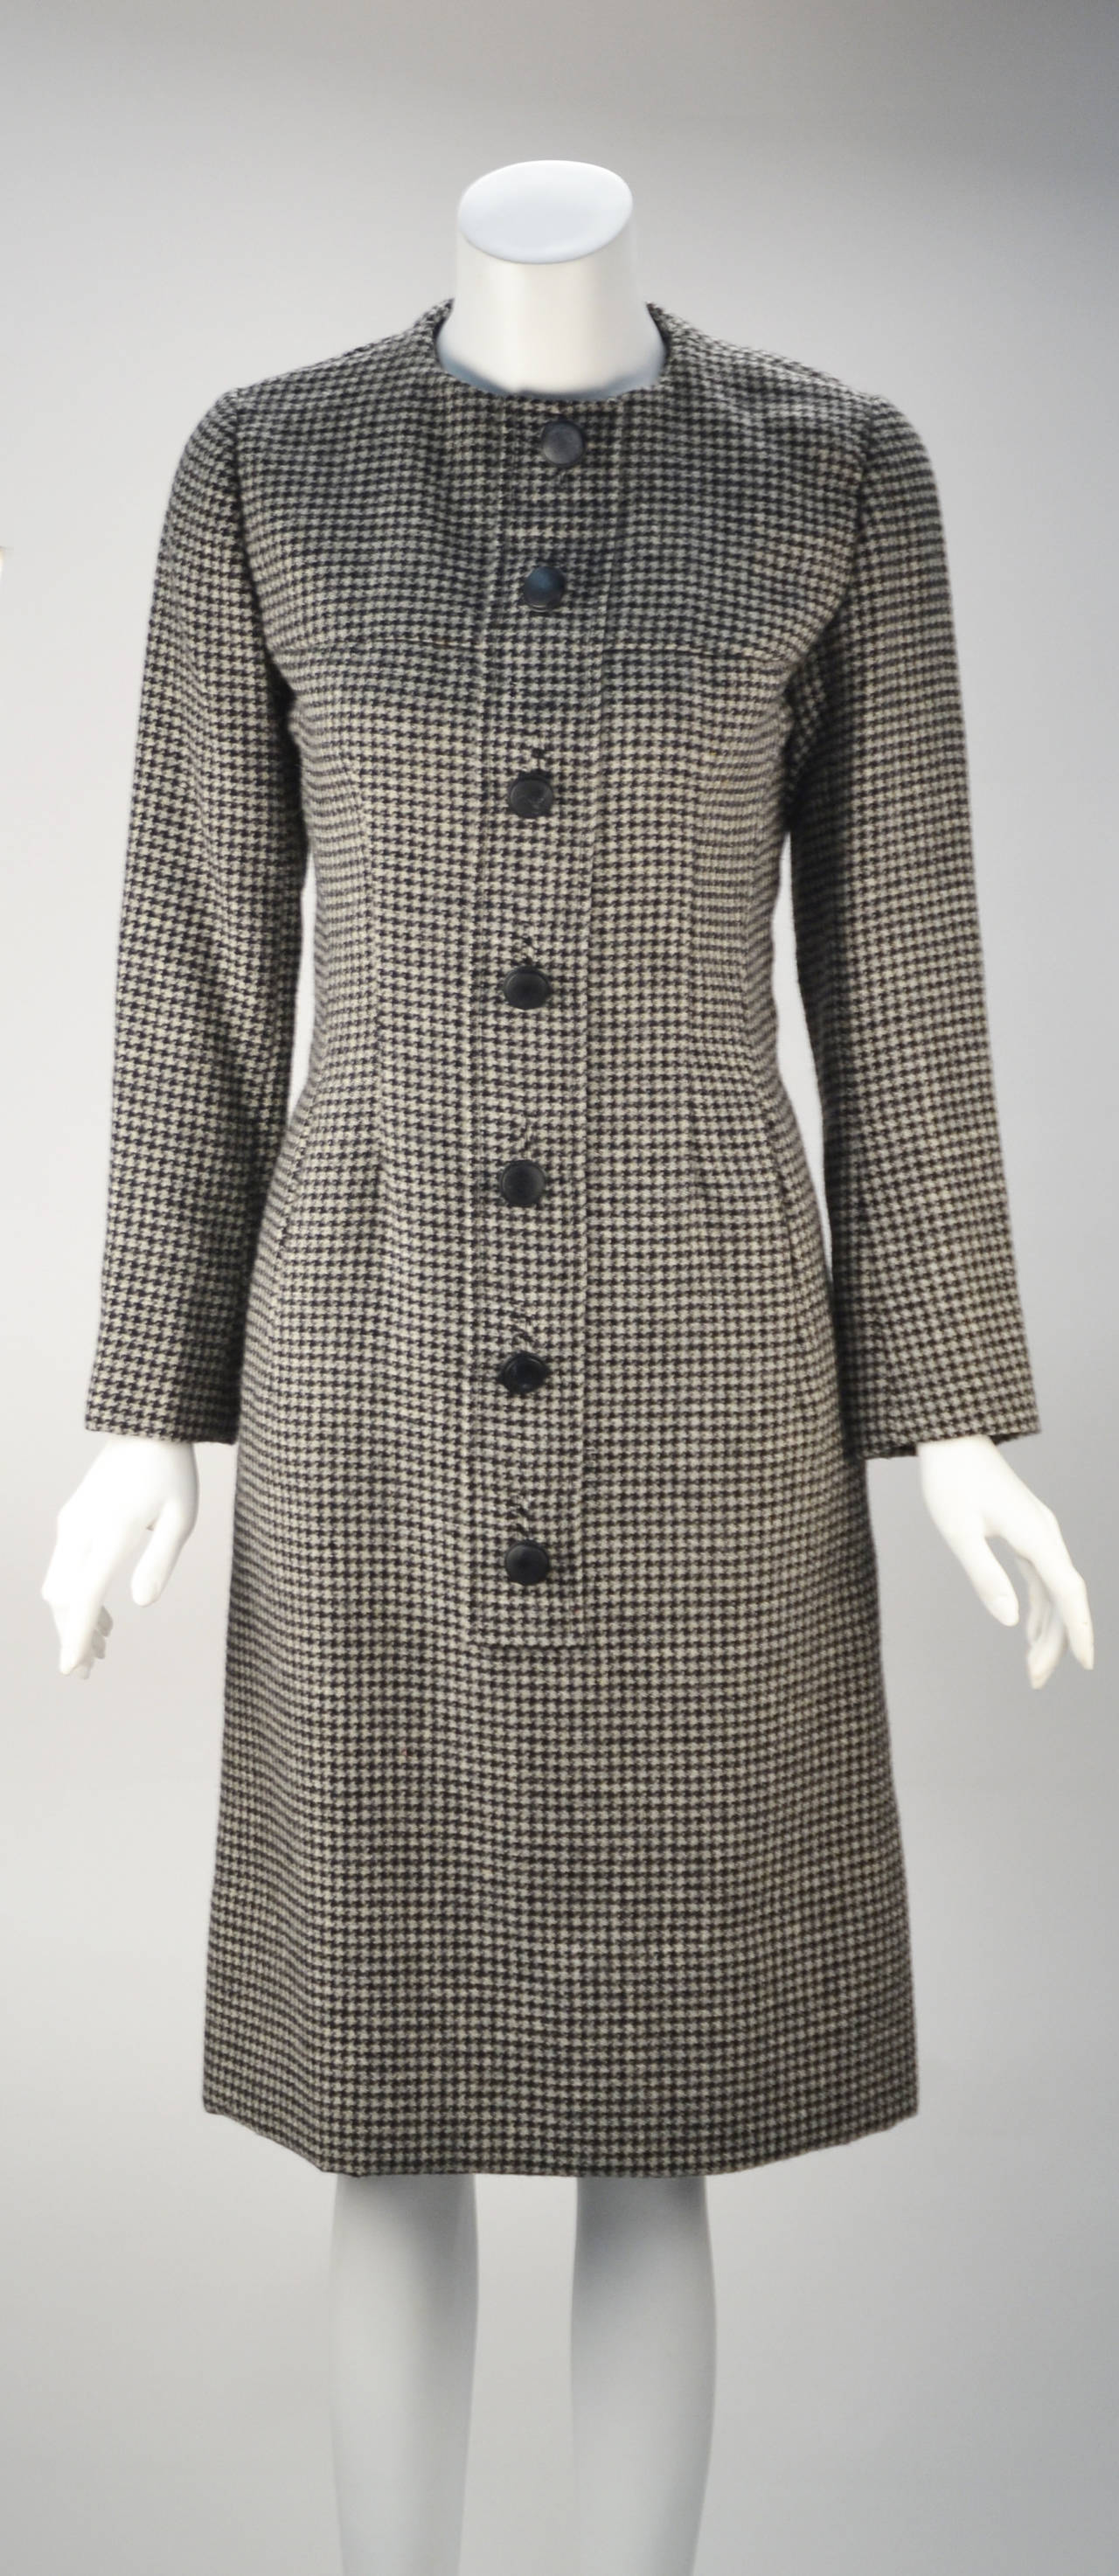 Extraordinary example of early Christian Dior's work is quite extraordinary. The New York label was made in America for the American market based on the runway designs and used many Couture standards known to some as Demi-Couture. Excellent, museum